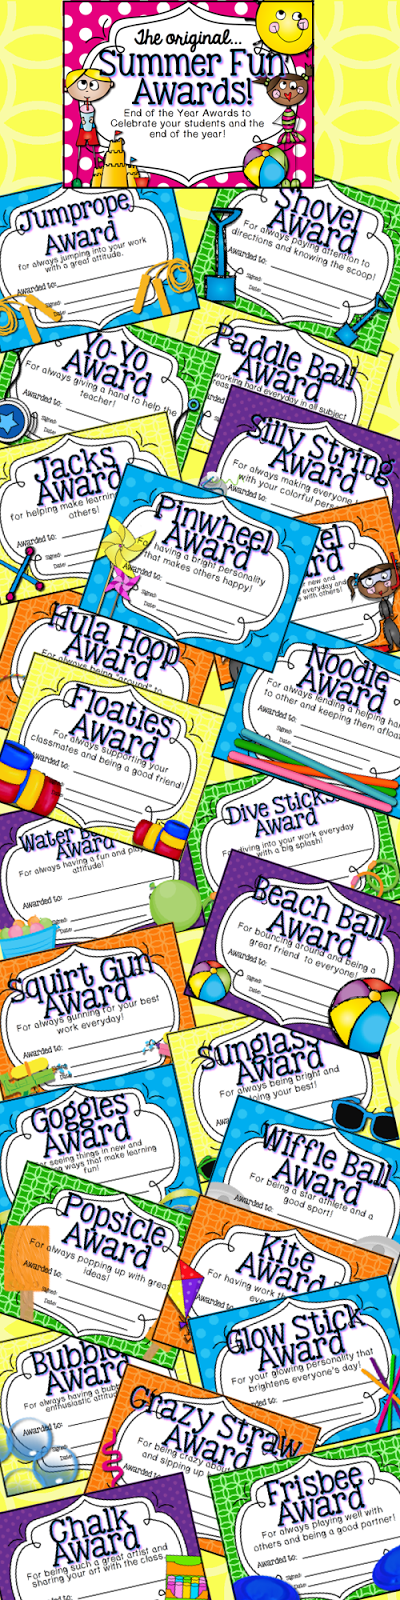 http://www.teacherspayteachers.com/Product/End-of-the-Year-Awards-Summer-Fun-Theme-259726